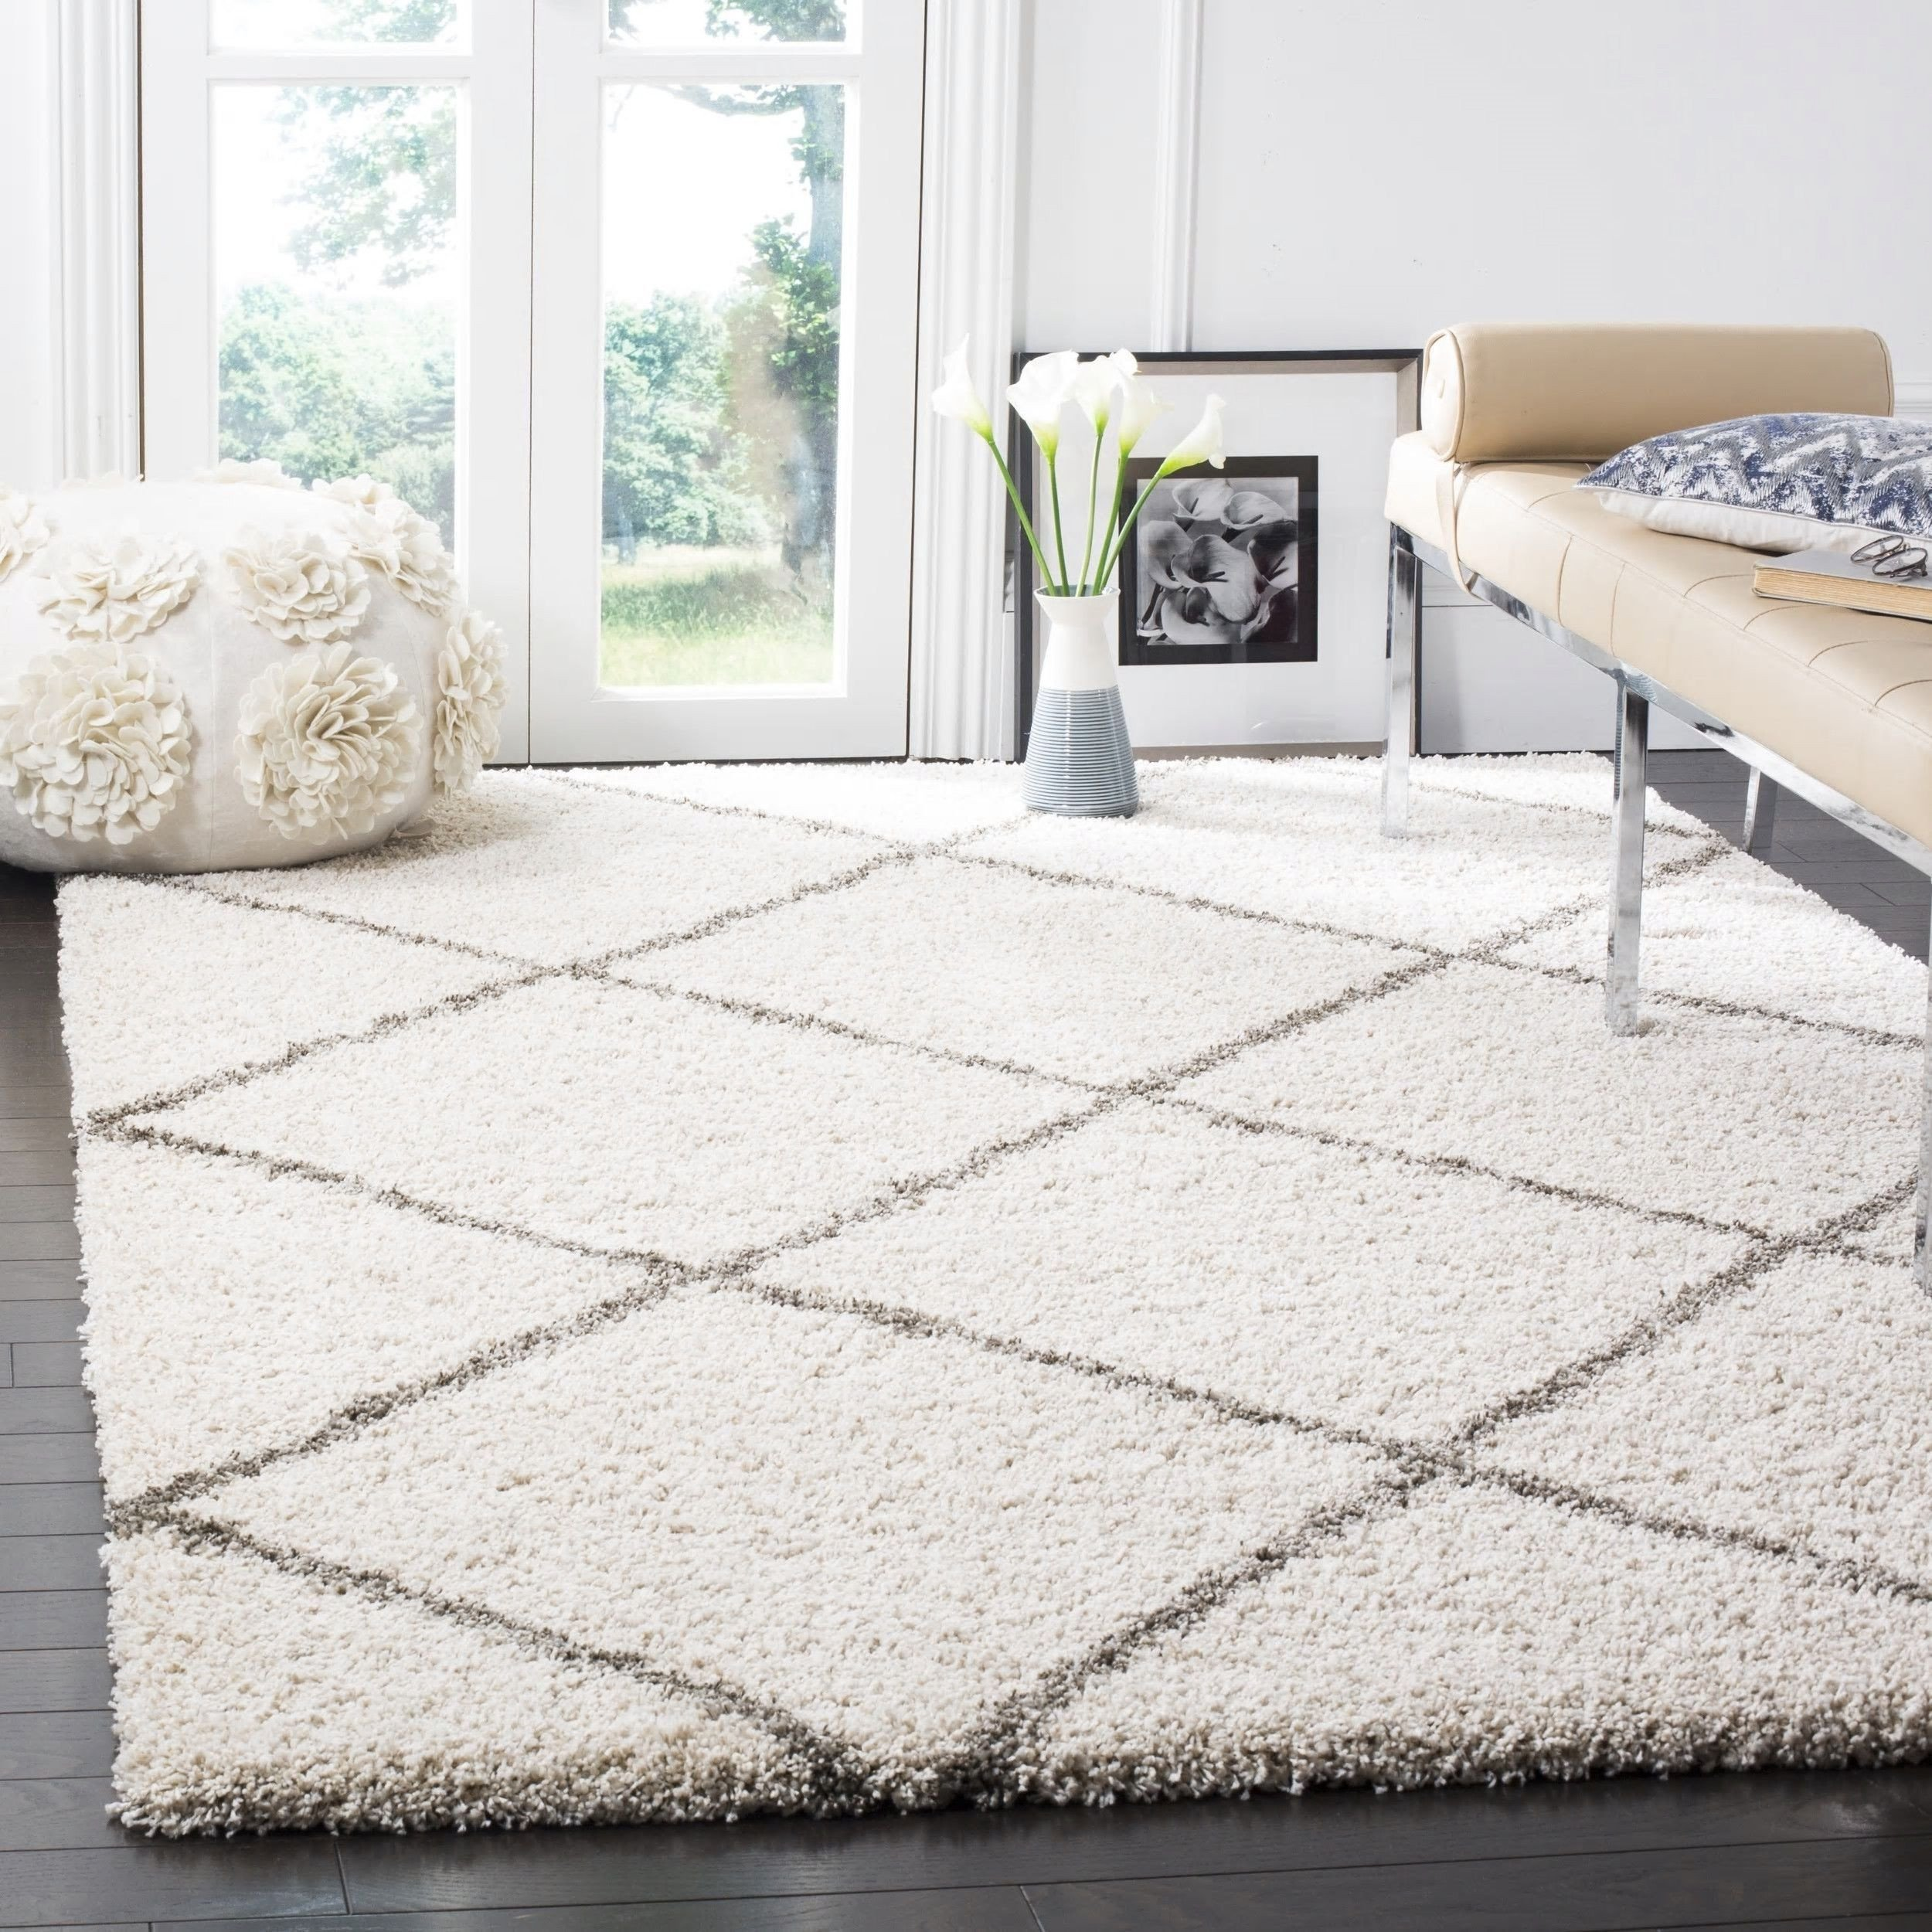 Area Rug for Bedroom Elegant Bohemian Trellis Ivory Shag area Rug